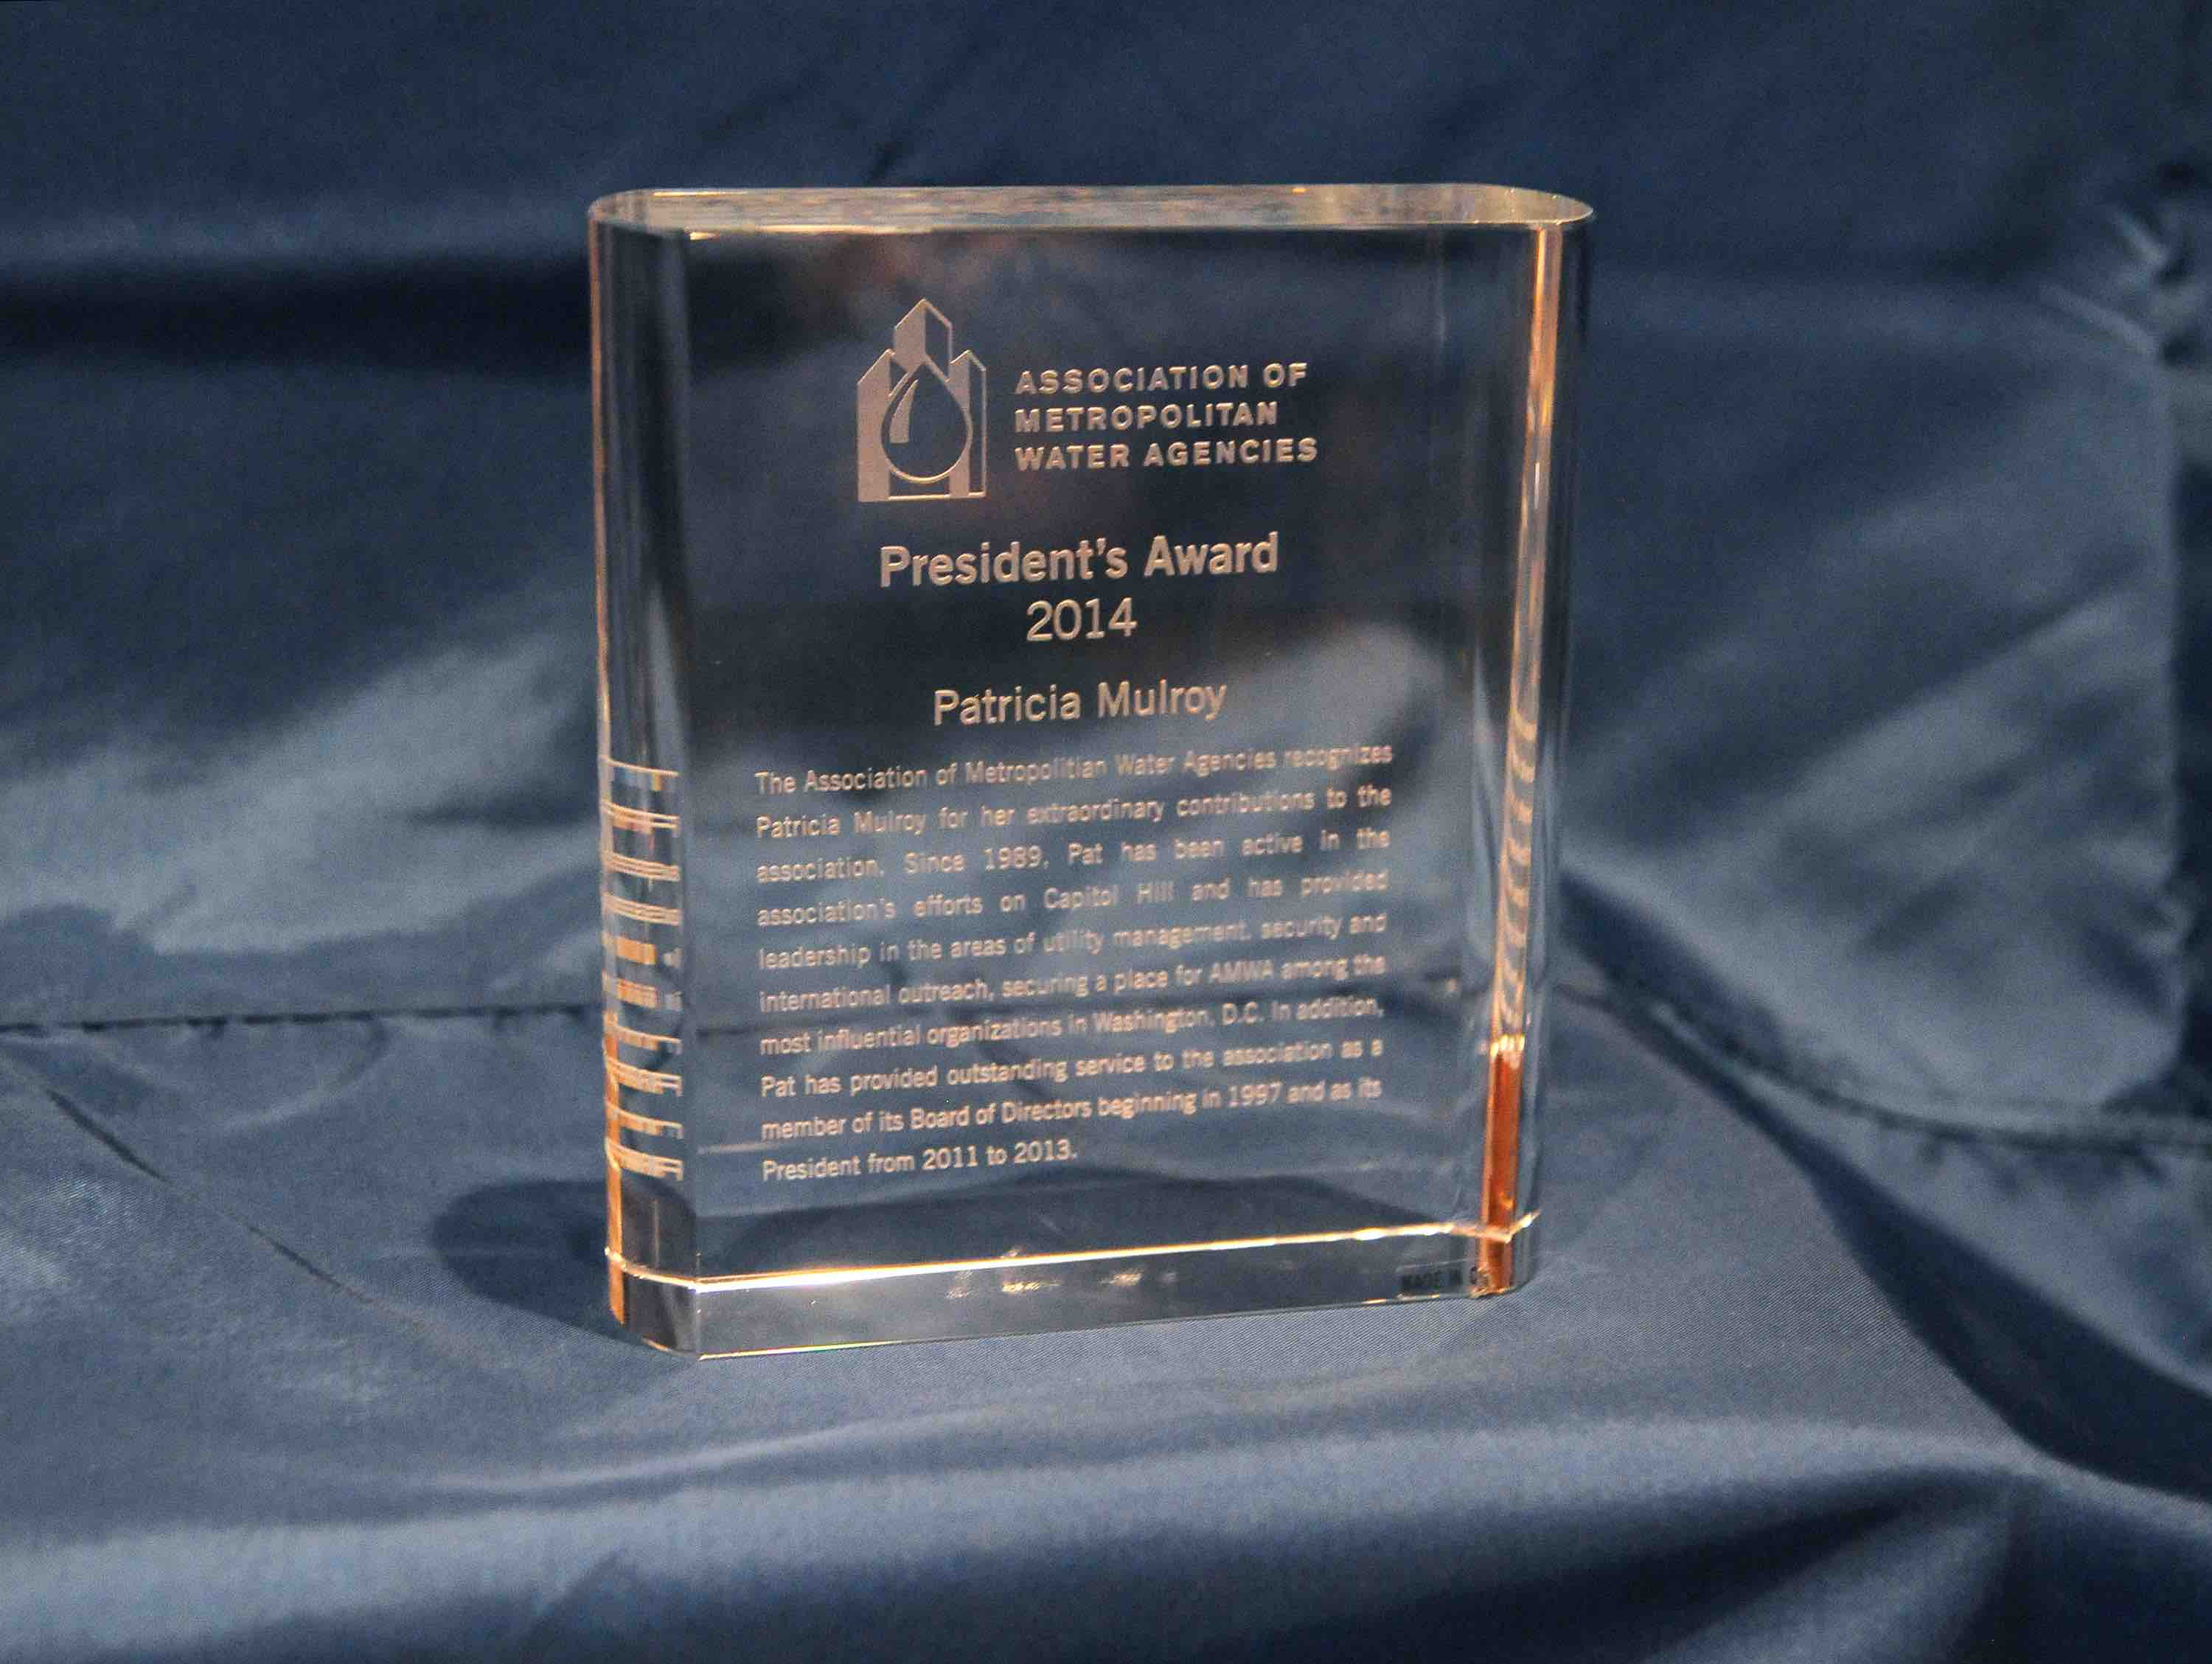 AMWA Presidents Award